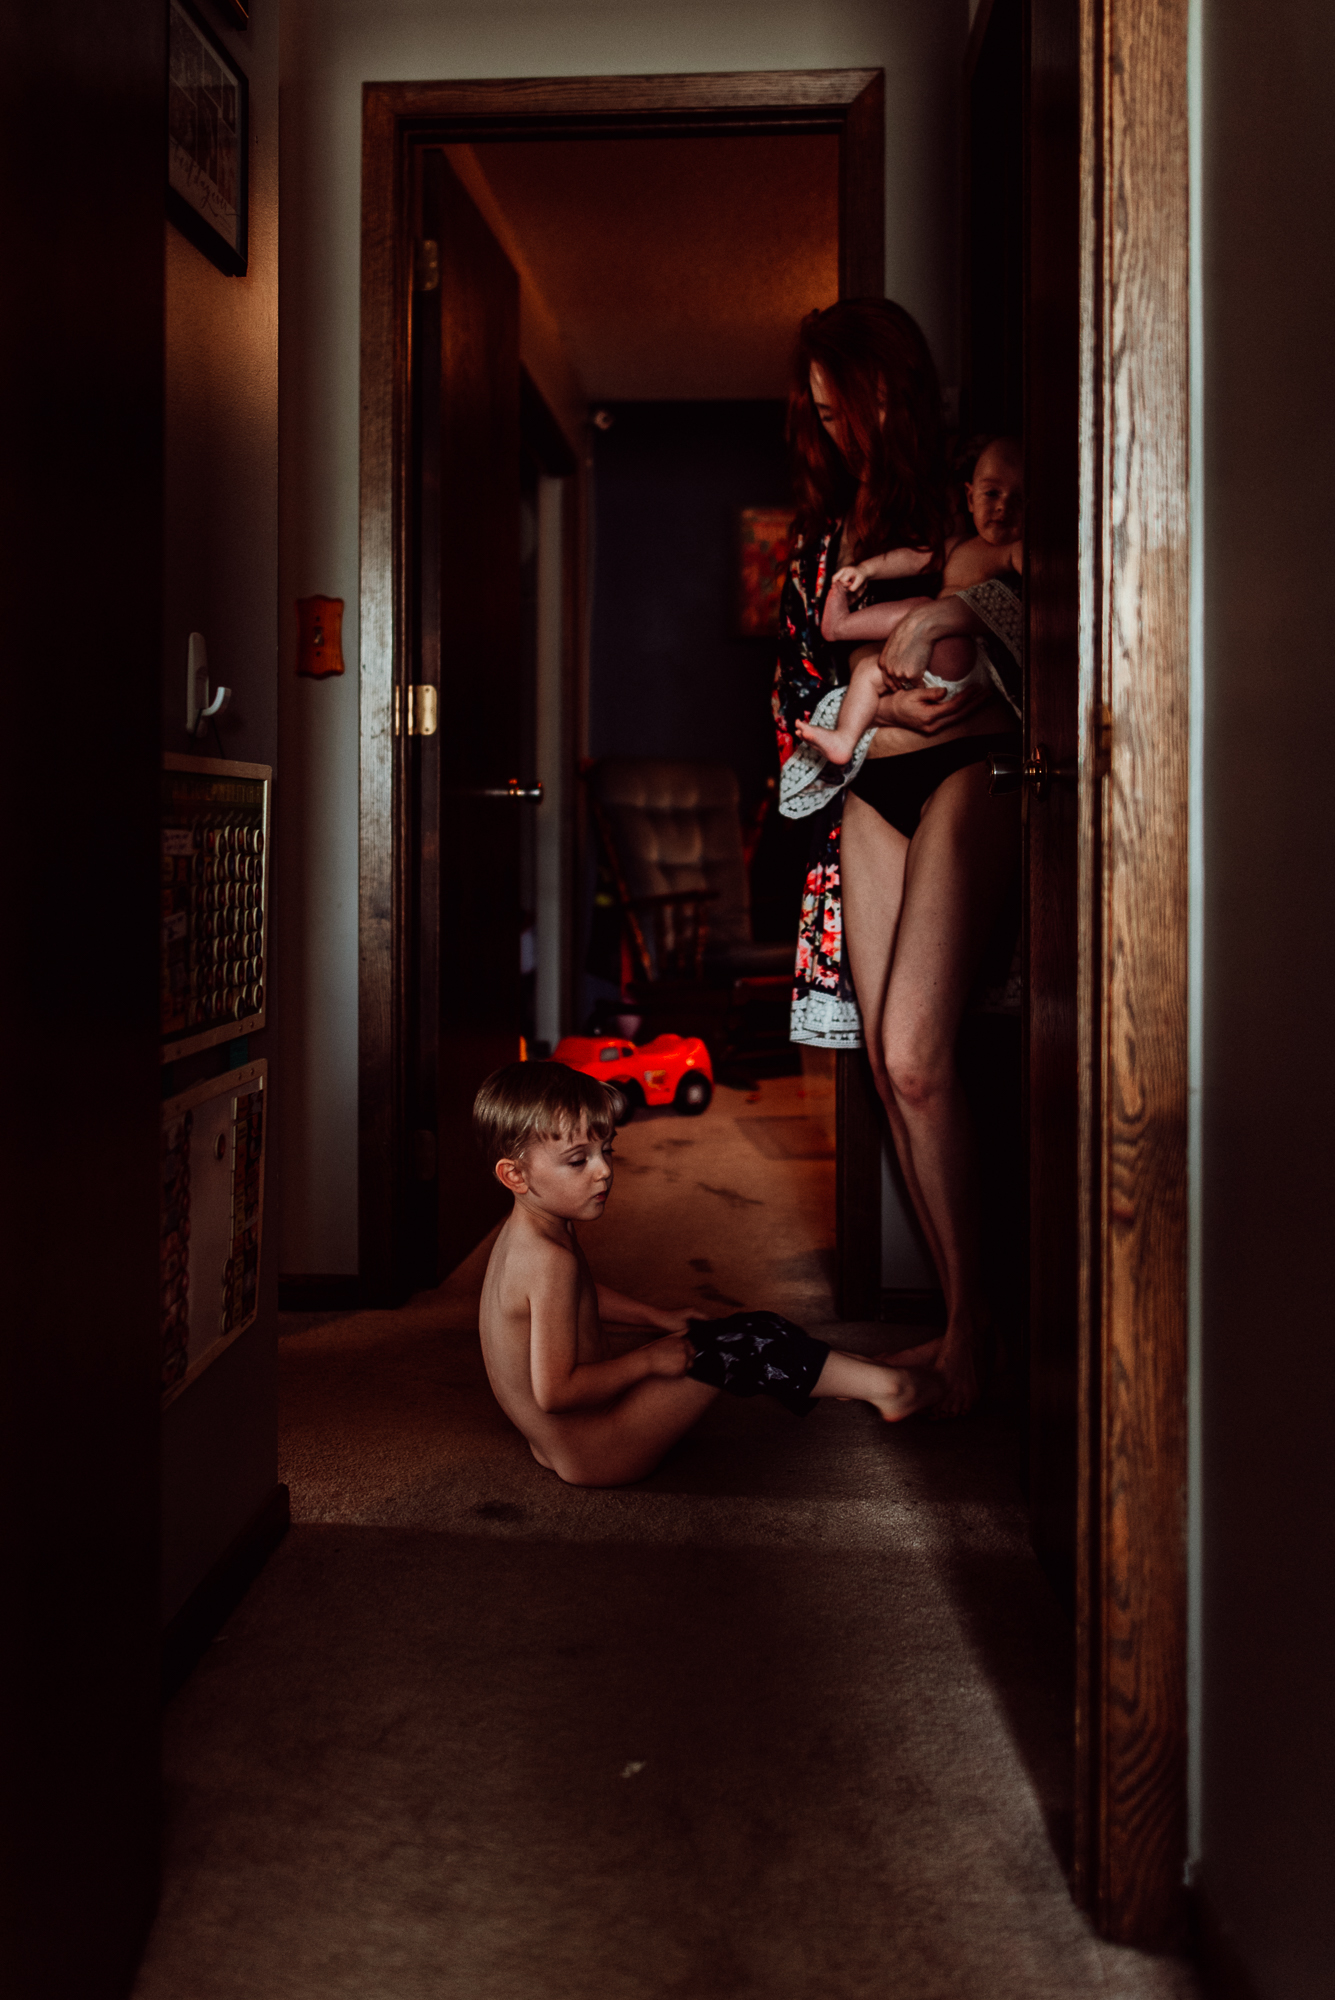 Minneapolis Postpartum Photography by Meredith Westin-May 14, 2019-131406.jpg